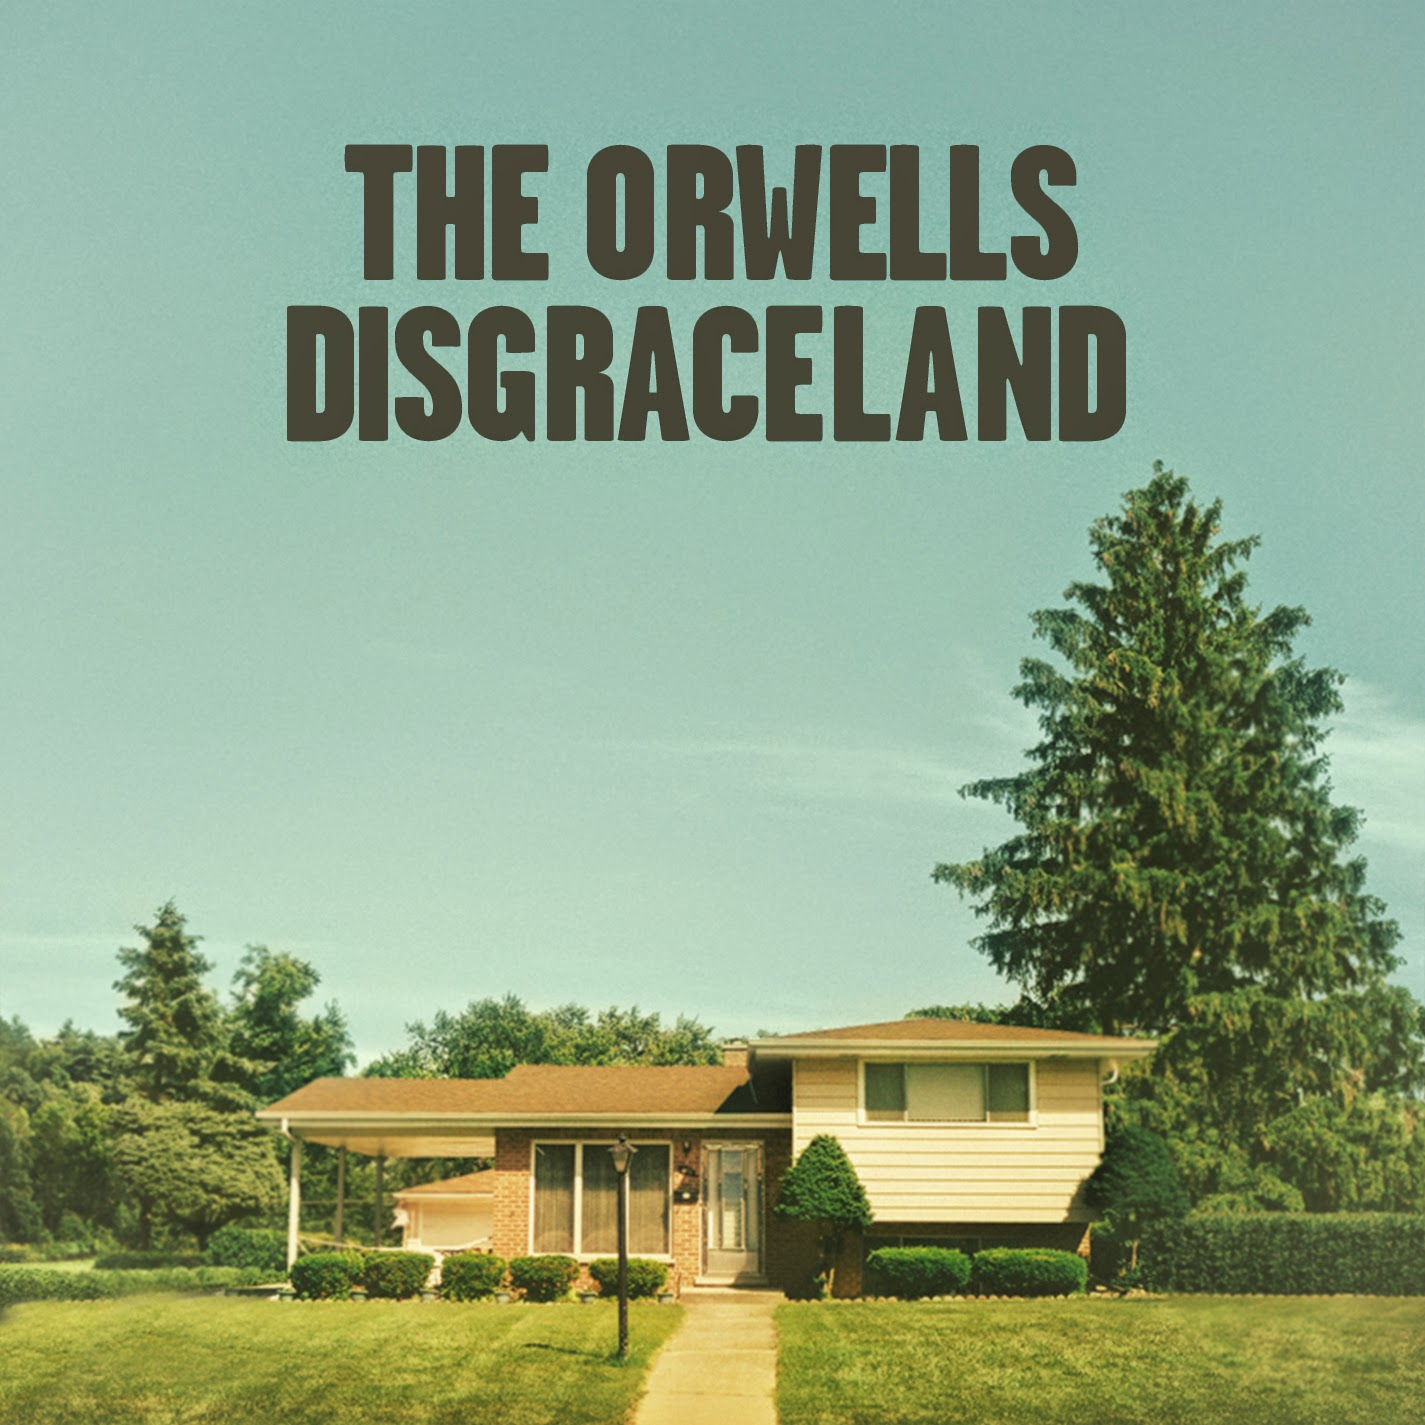 THE ORWELLS - (2014) Disgraceland